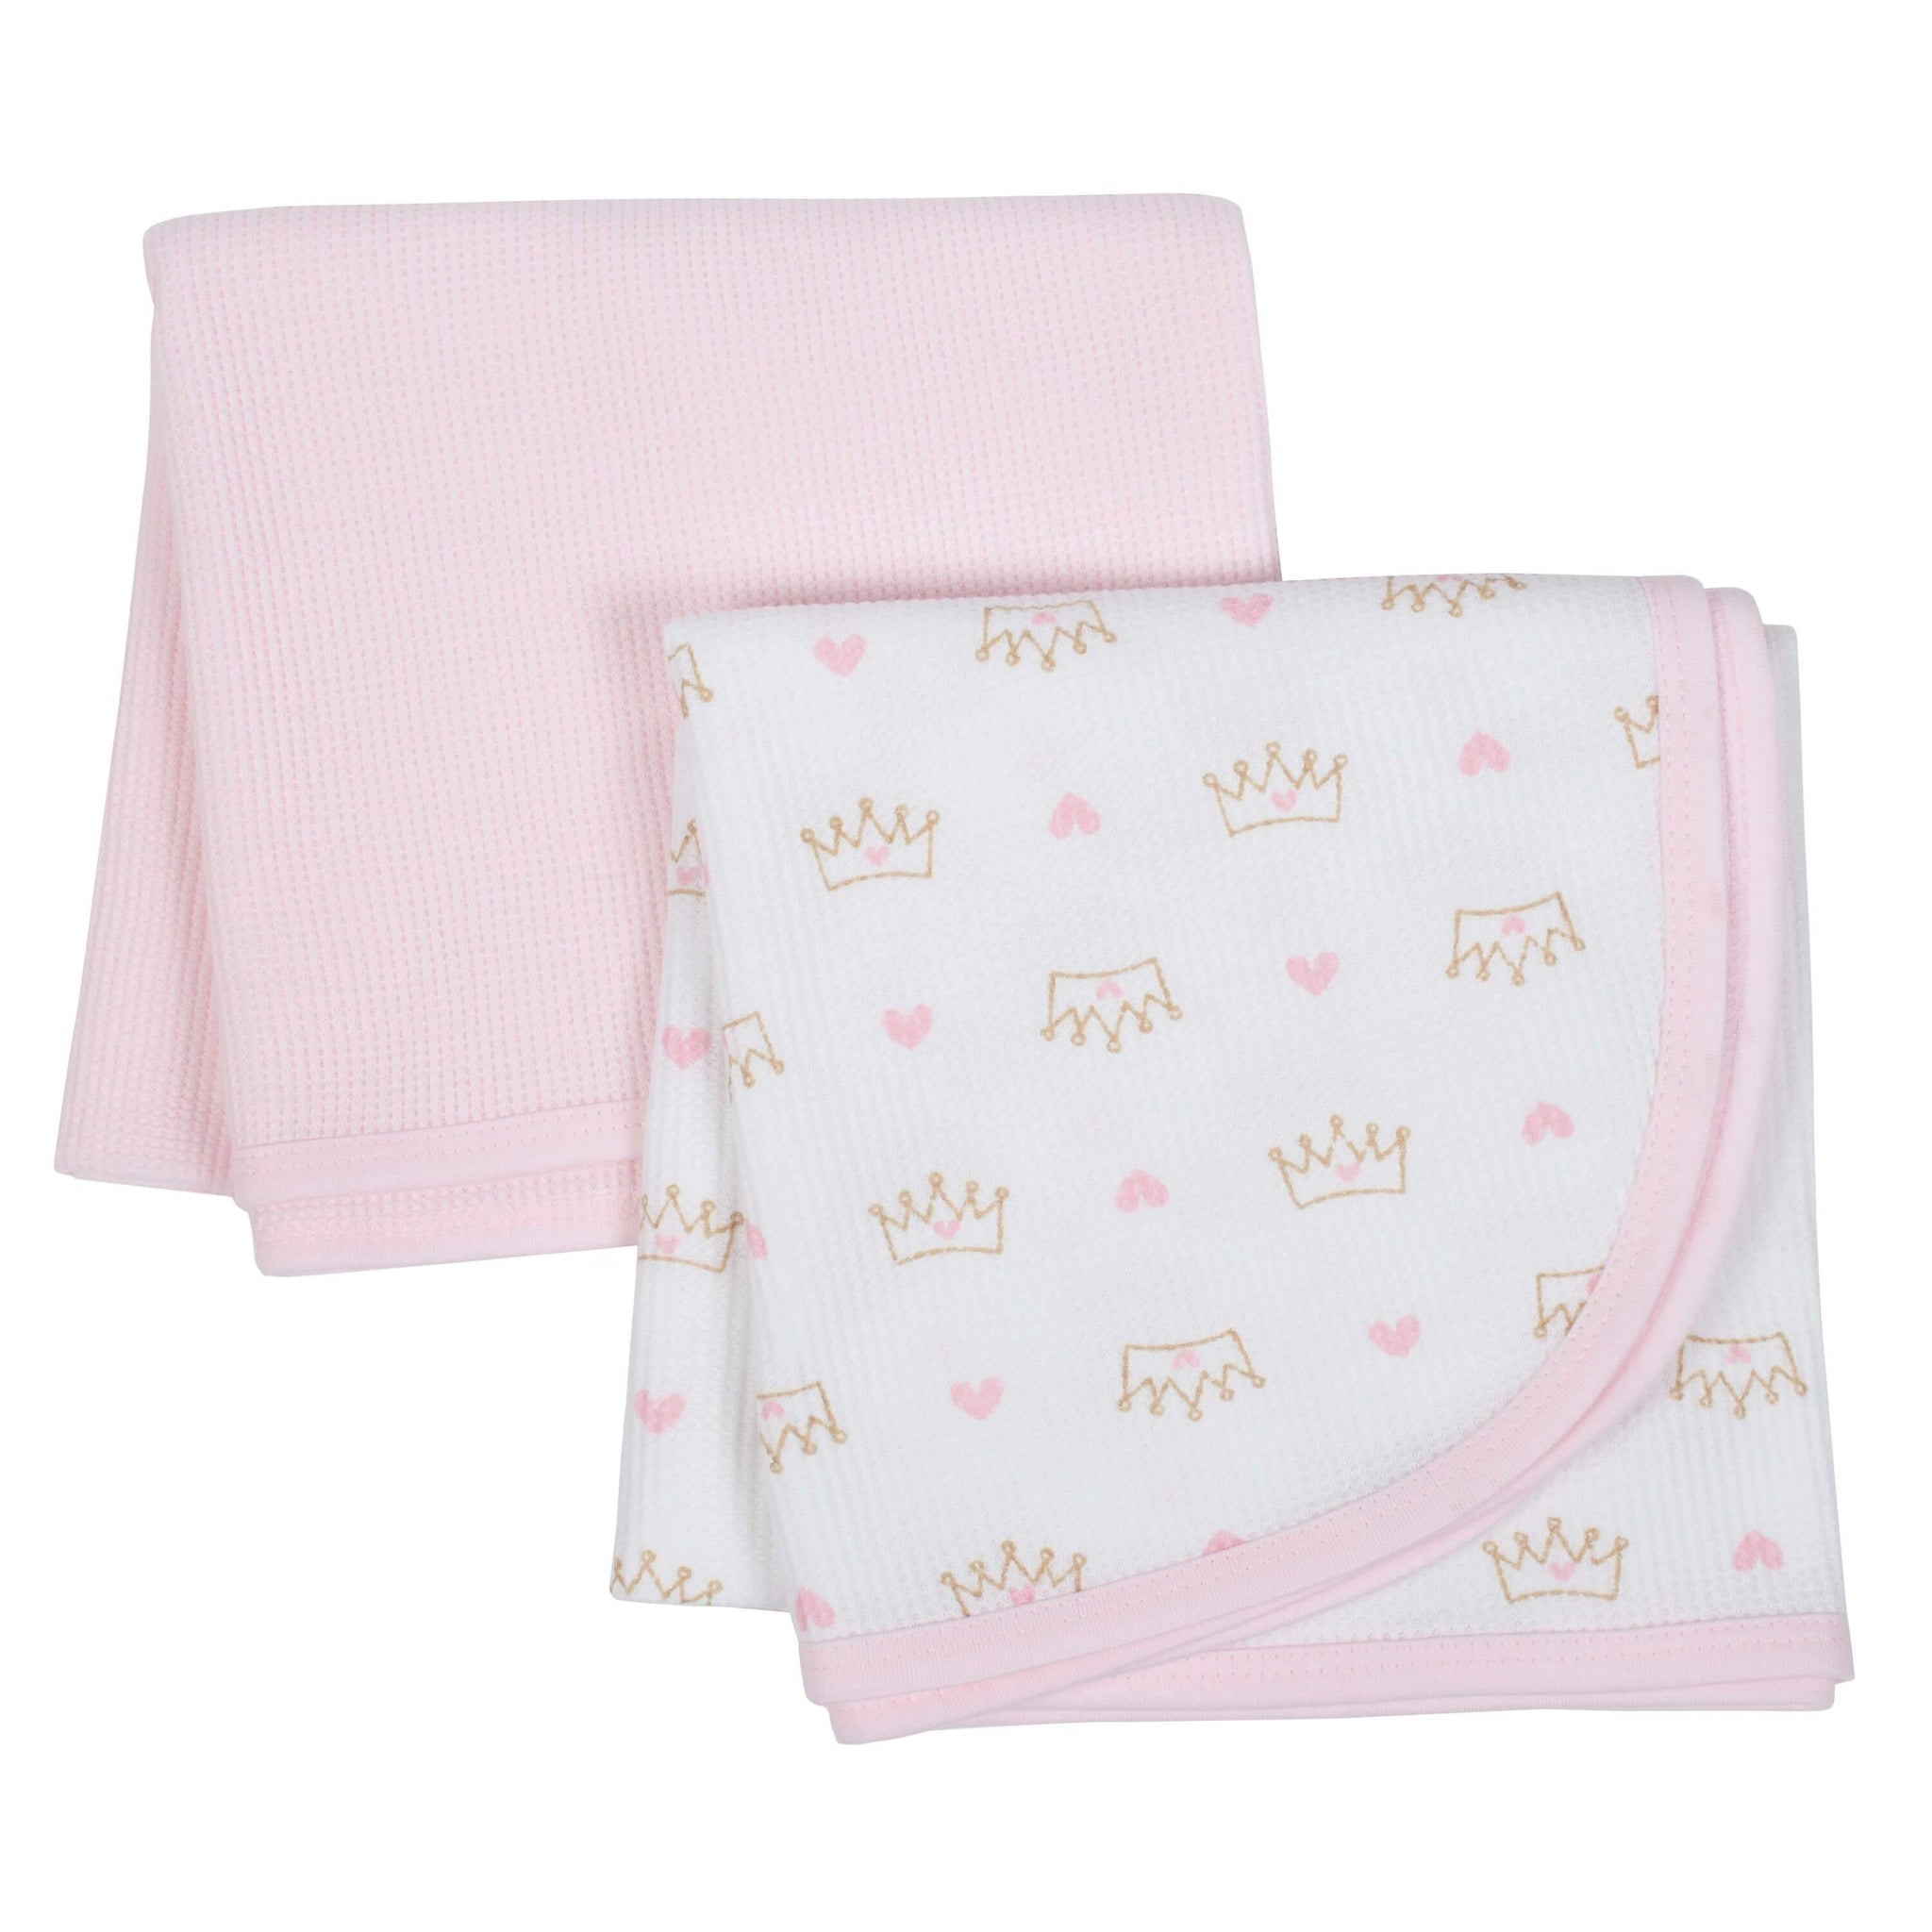 2-Pack Girls Princess Thermal Blankets